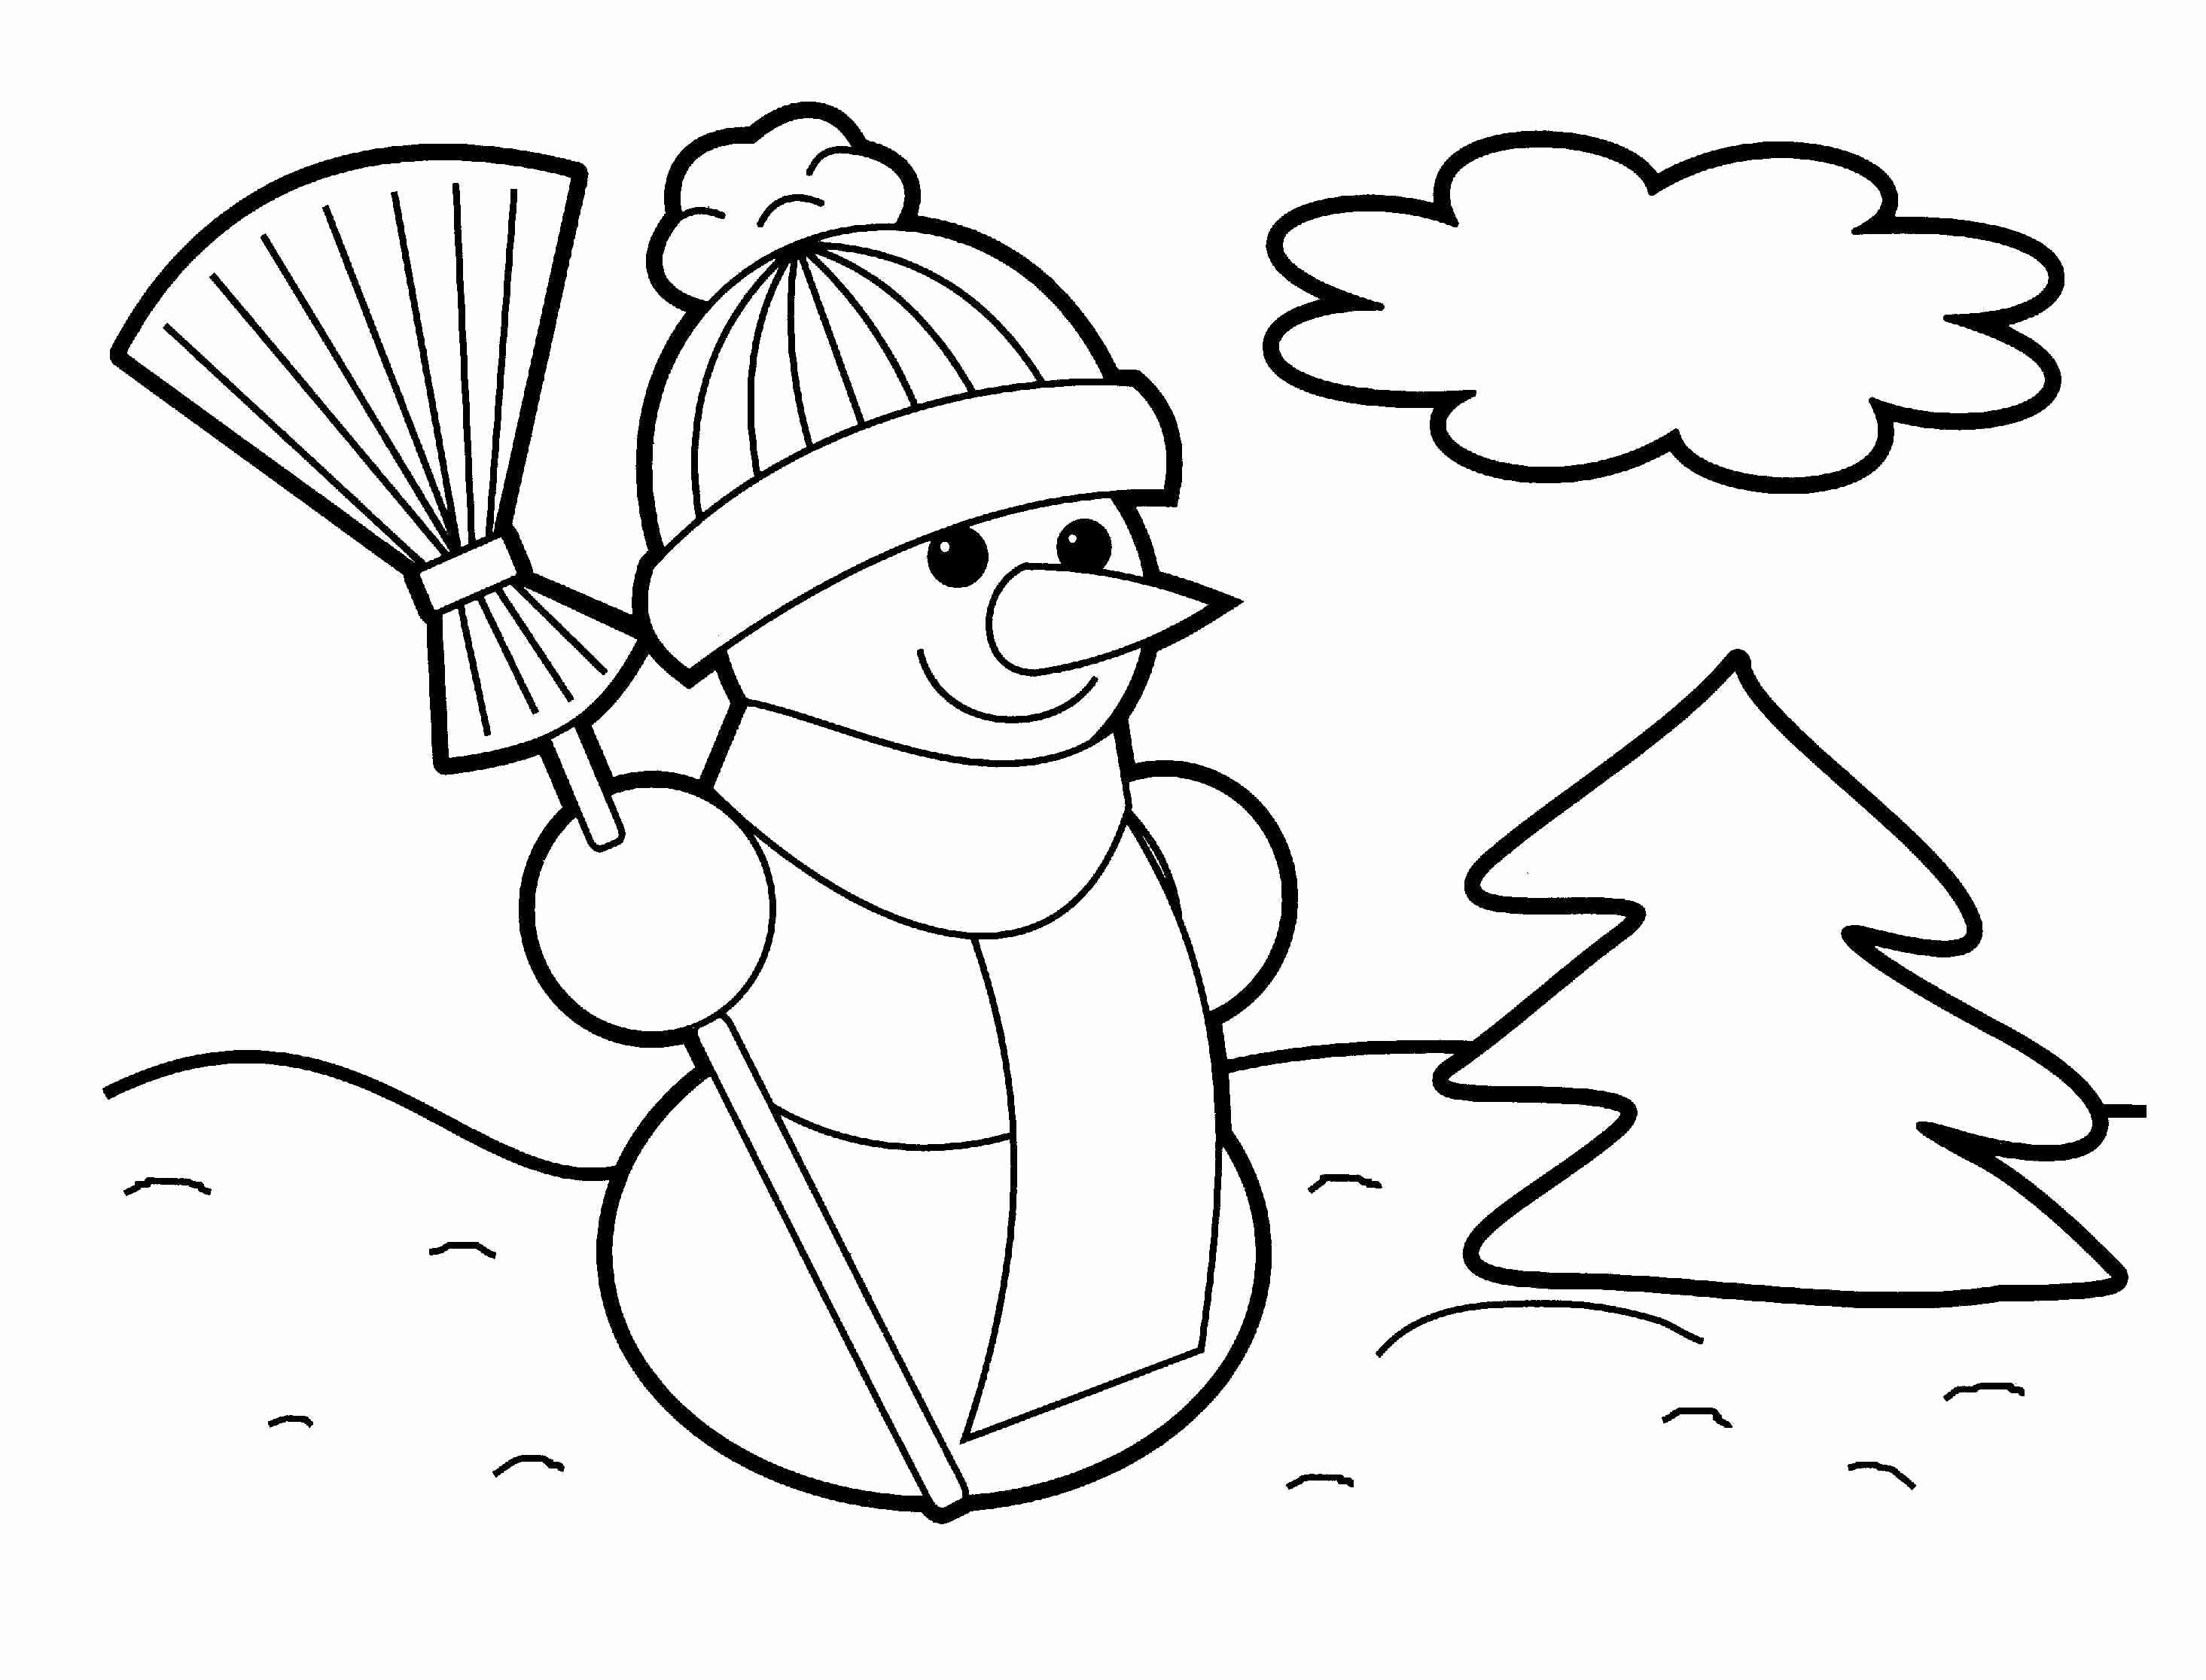 Christmas Wreath Coloring Pages Printable Coloring Pages Of Christmas Wreaths Awesome Christmas